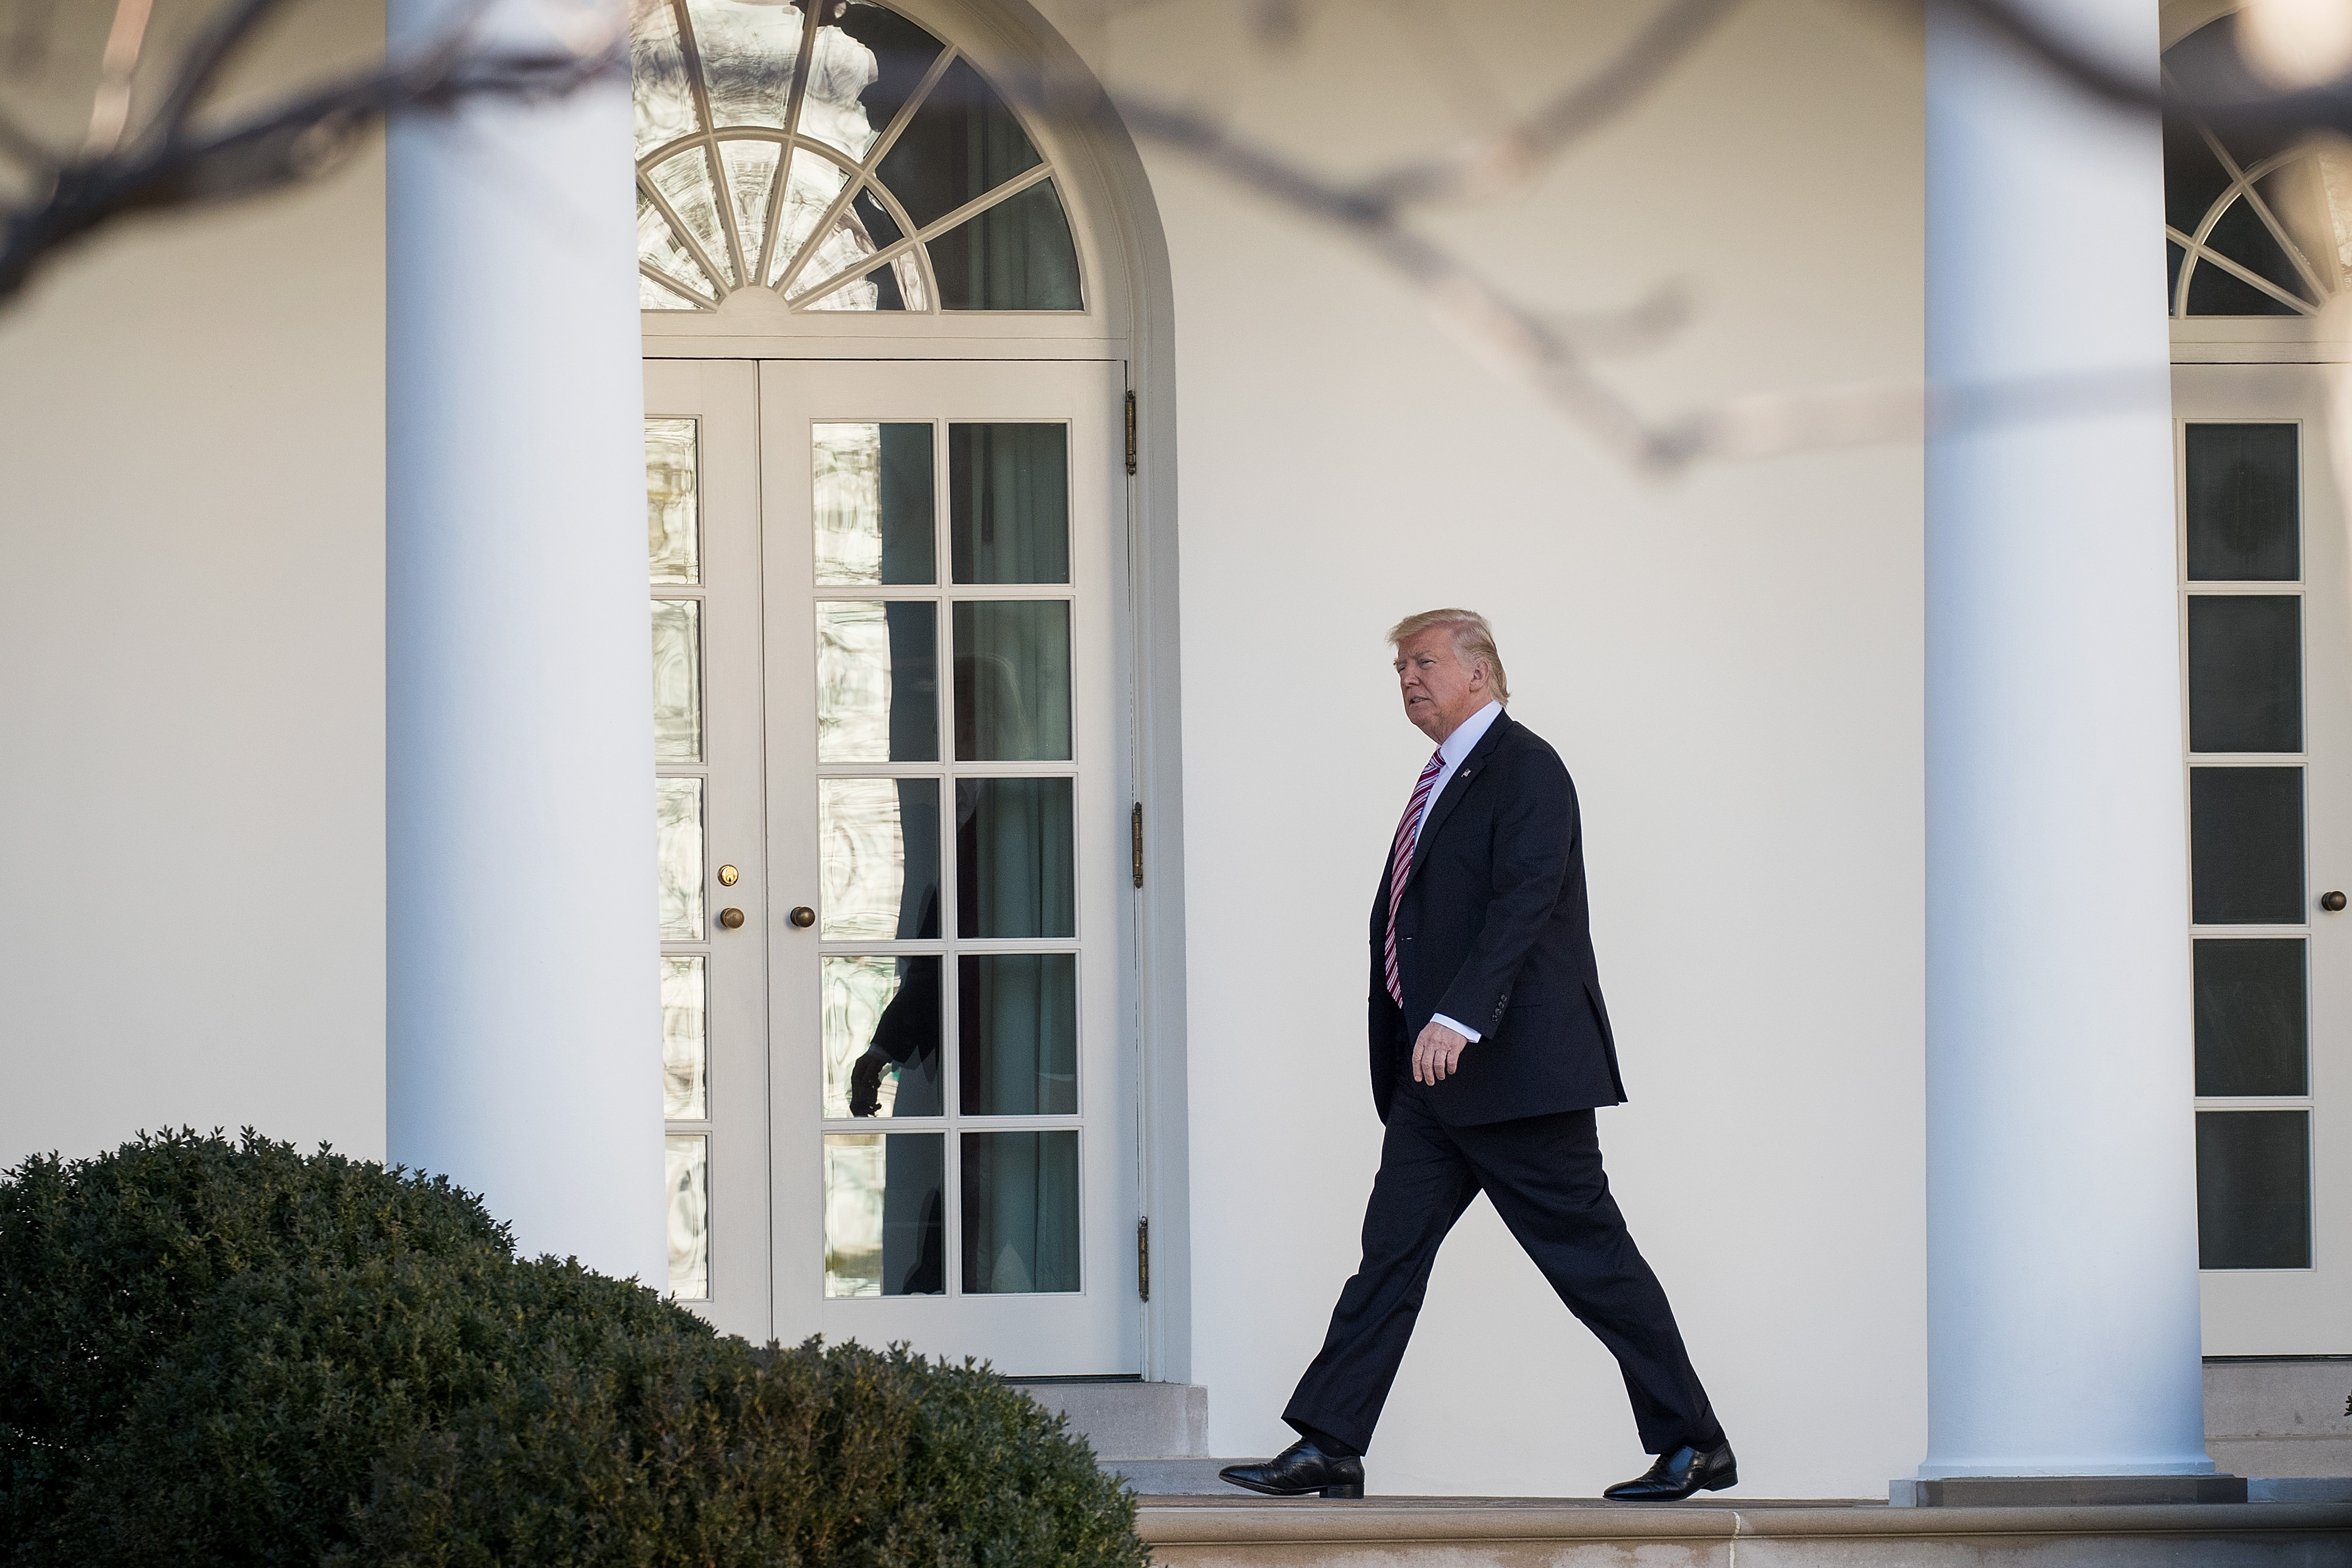 President Trump walks along the West Wing Colonnade on his way to the Oval Office at the White House, on Jan. 26, 2017.